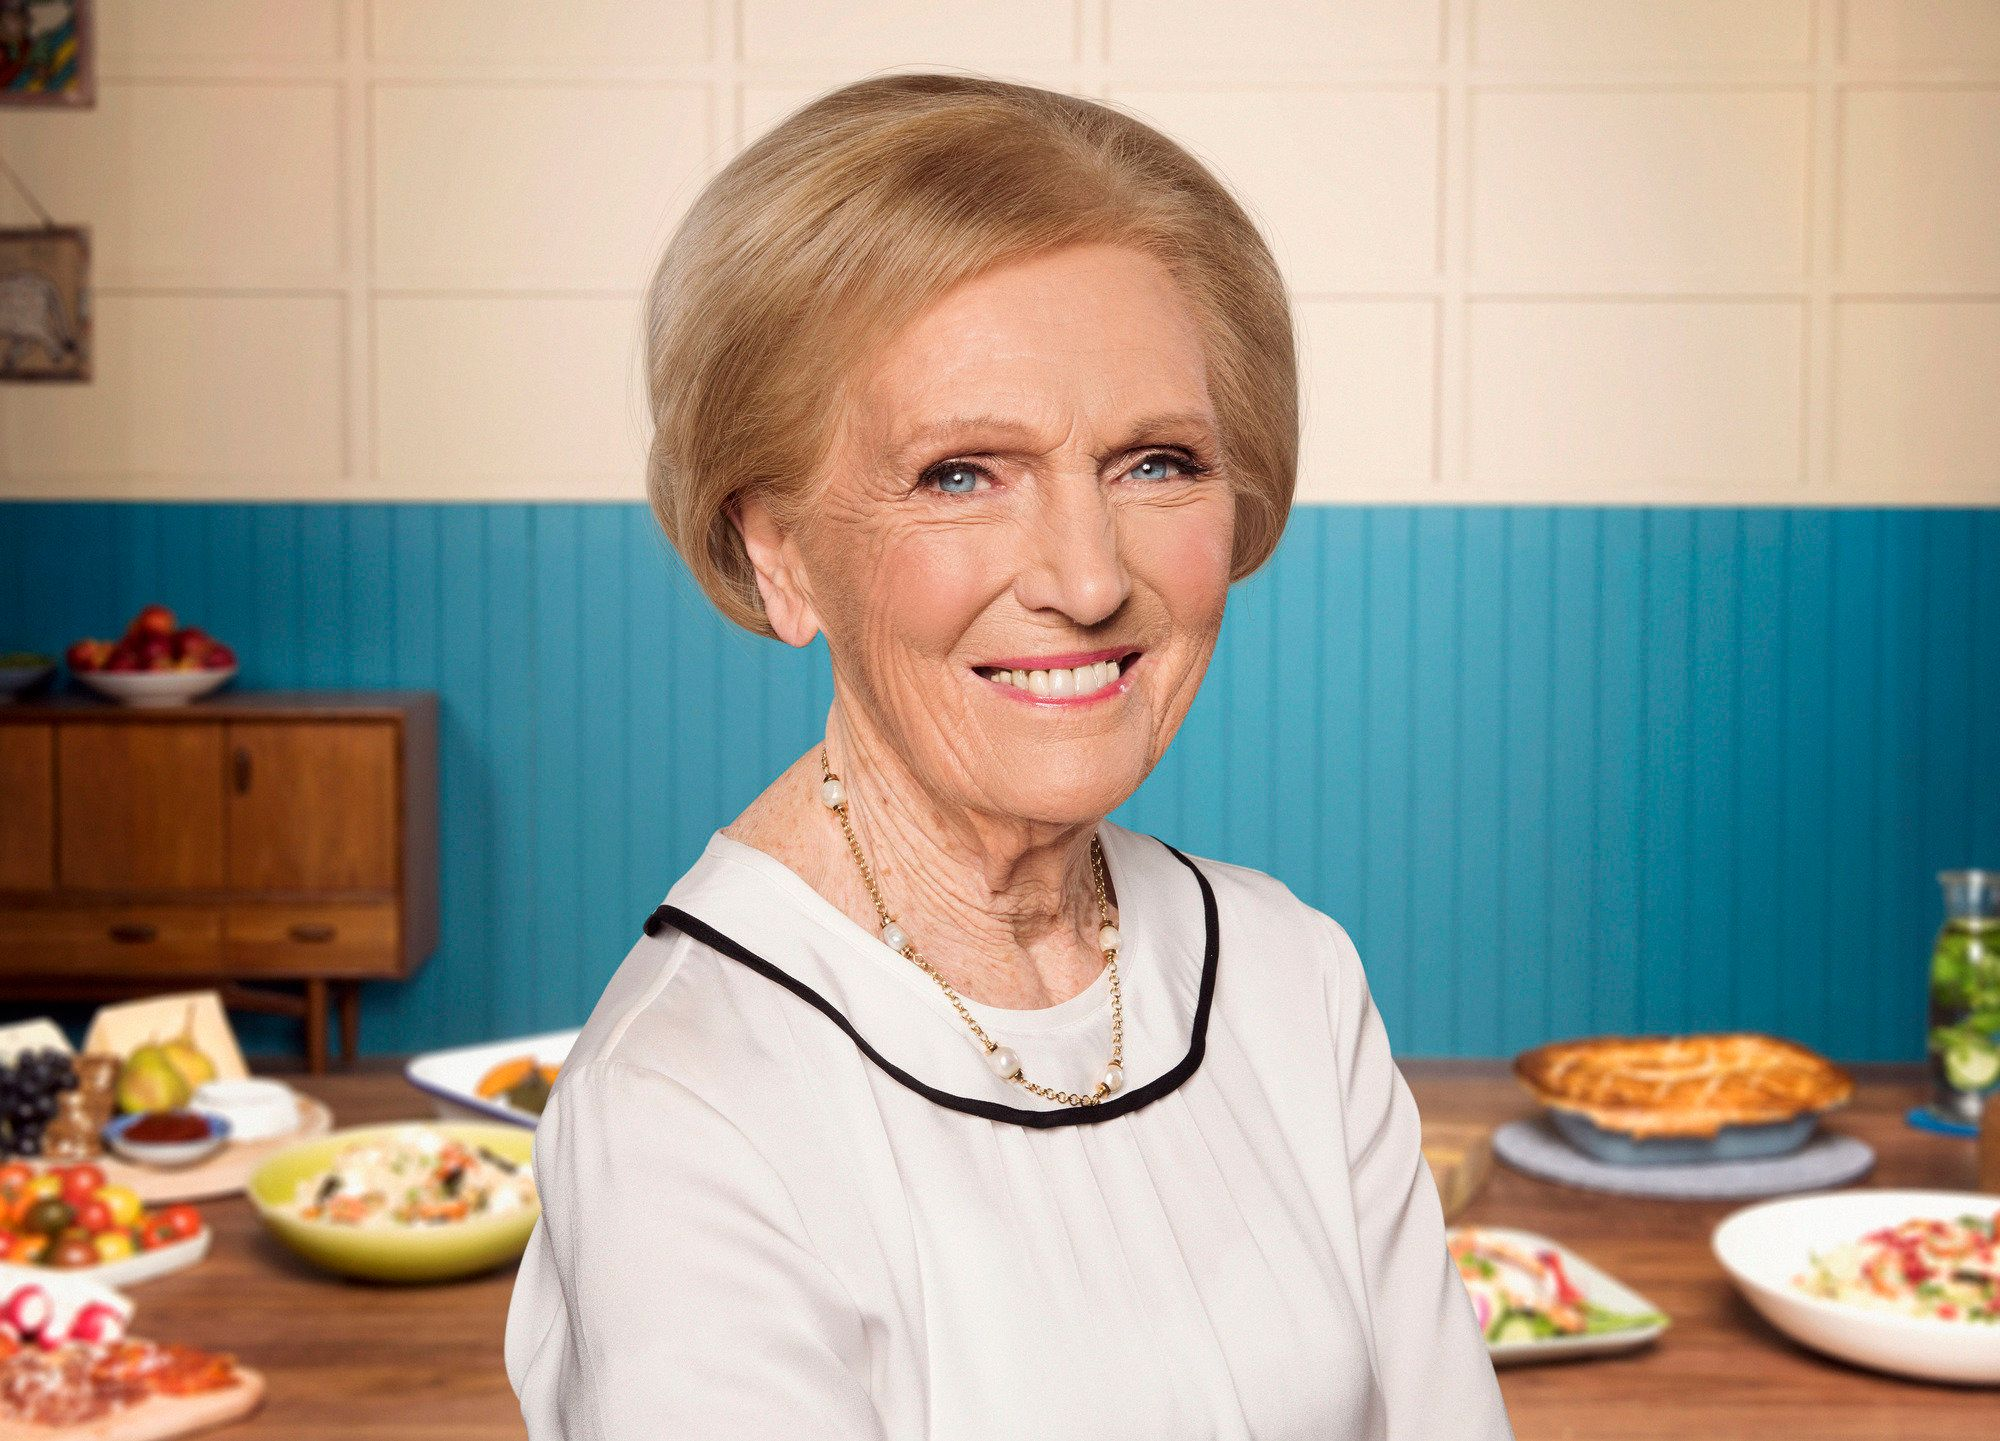 Mary Berry Admits Nerves About New Show 'Britain's Best Home Cook'